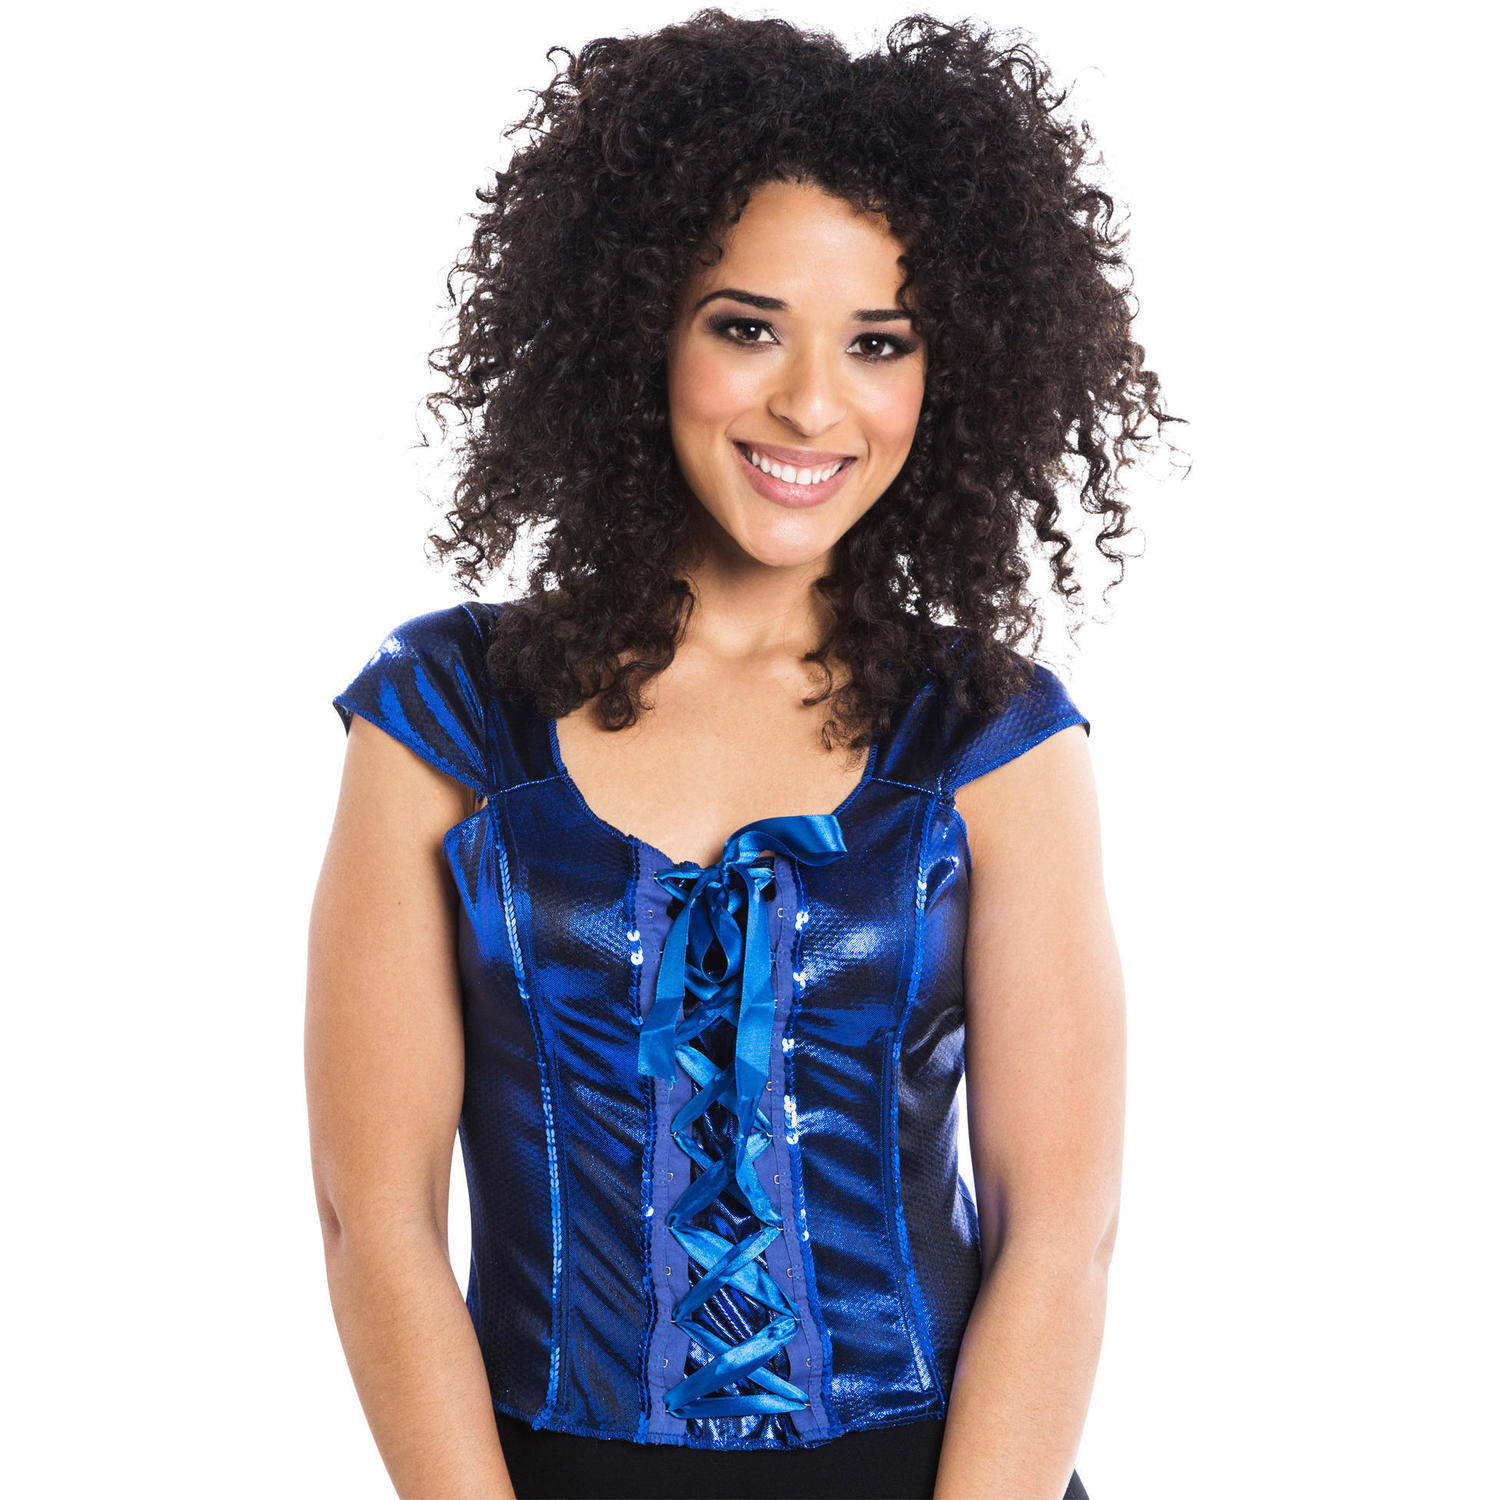 Lace-Up Blue Top Women's Adult Halloween Dress Up / Role Play Costume